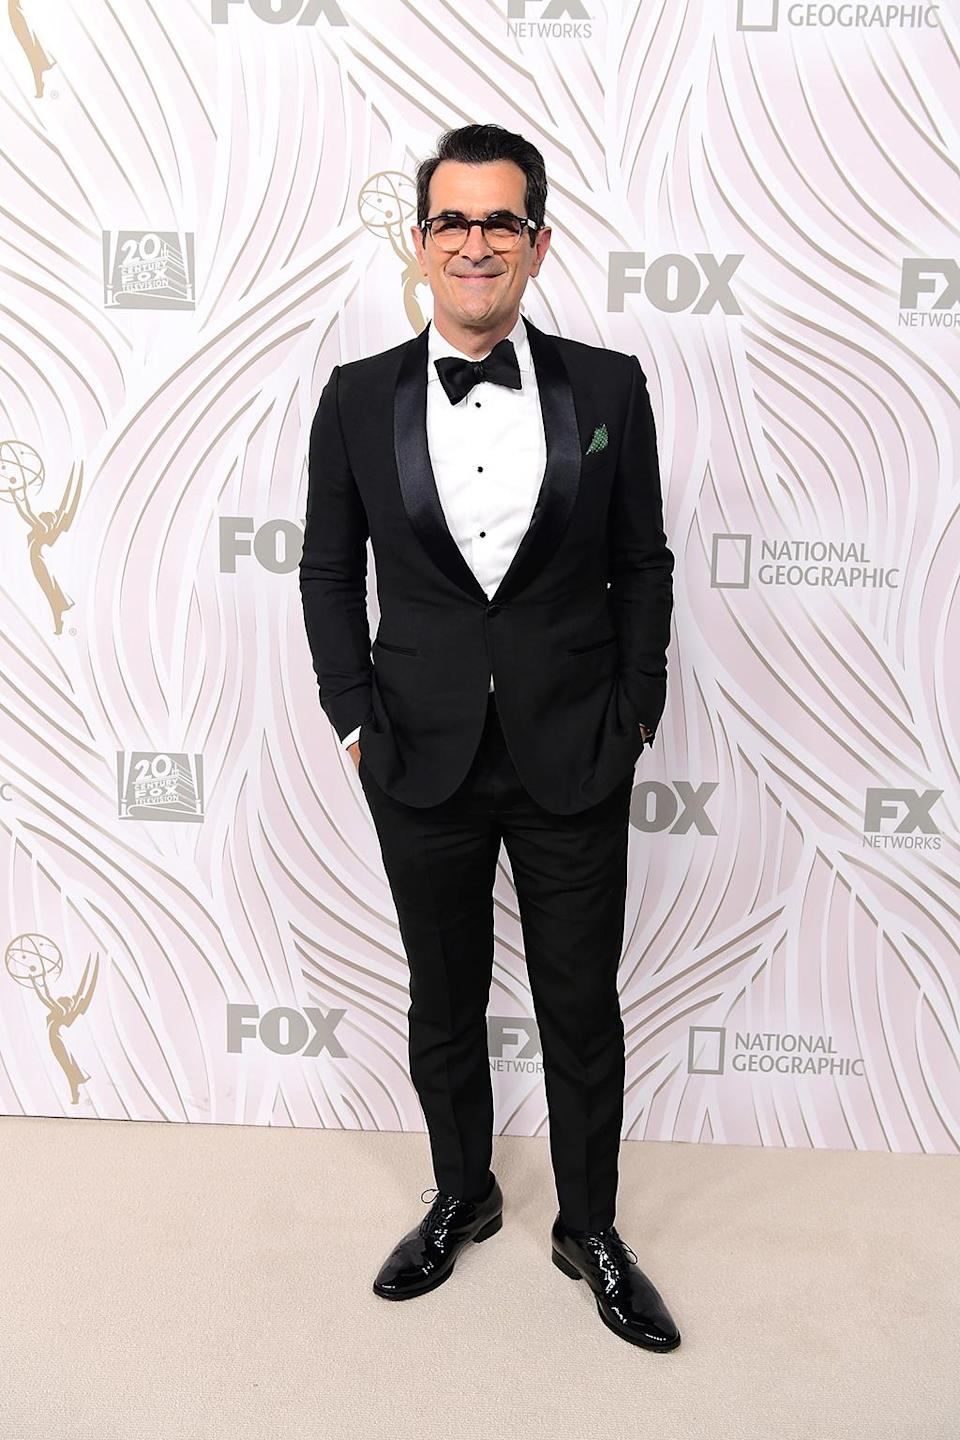 <p>Ty Burrell attended the Fox Broadcasting Co., Twentieth Century Fox Television, FX, and <em>National Geographic</em> after-party at Vibiana. (Photo: Emma McIntyre/Getty Images) </p>